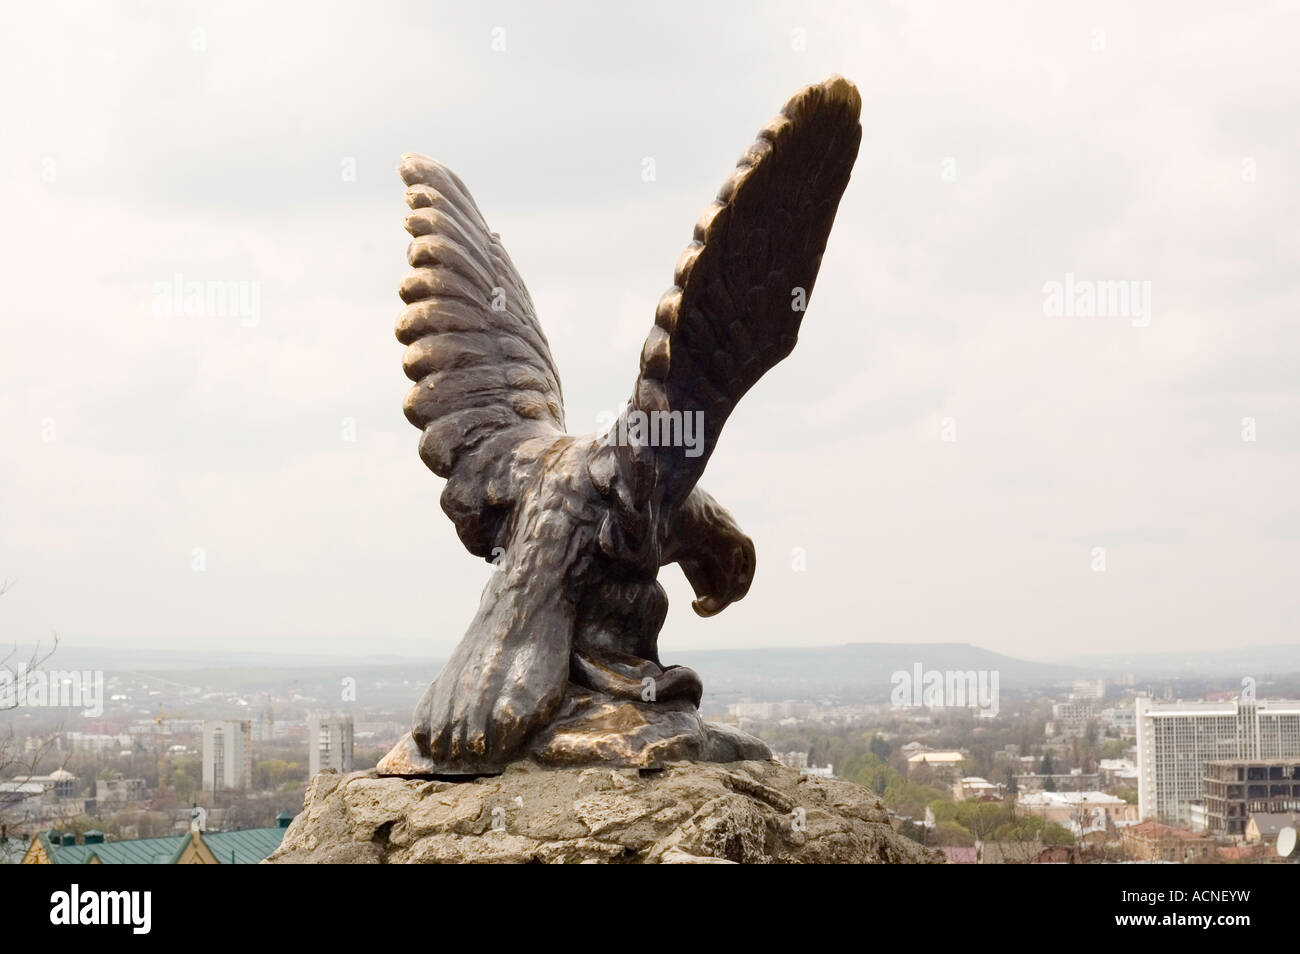 Russian Eagle statue in Pyatigorsk in the North Caucasus region of South Western Russia - Stock Image